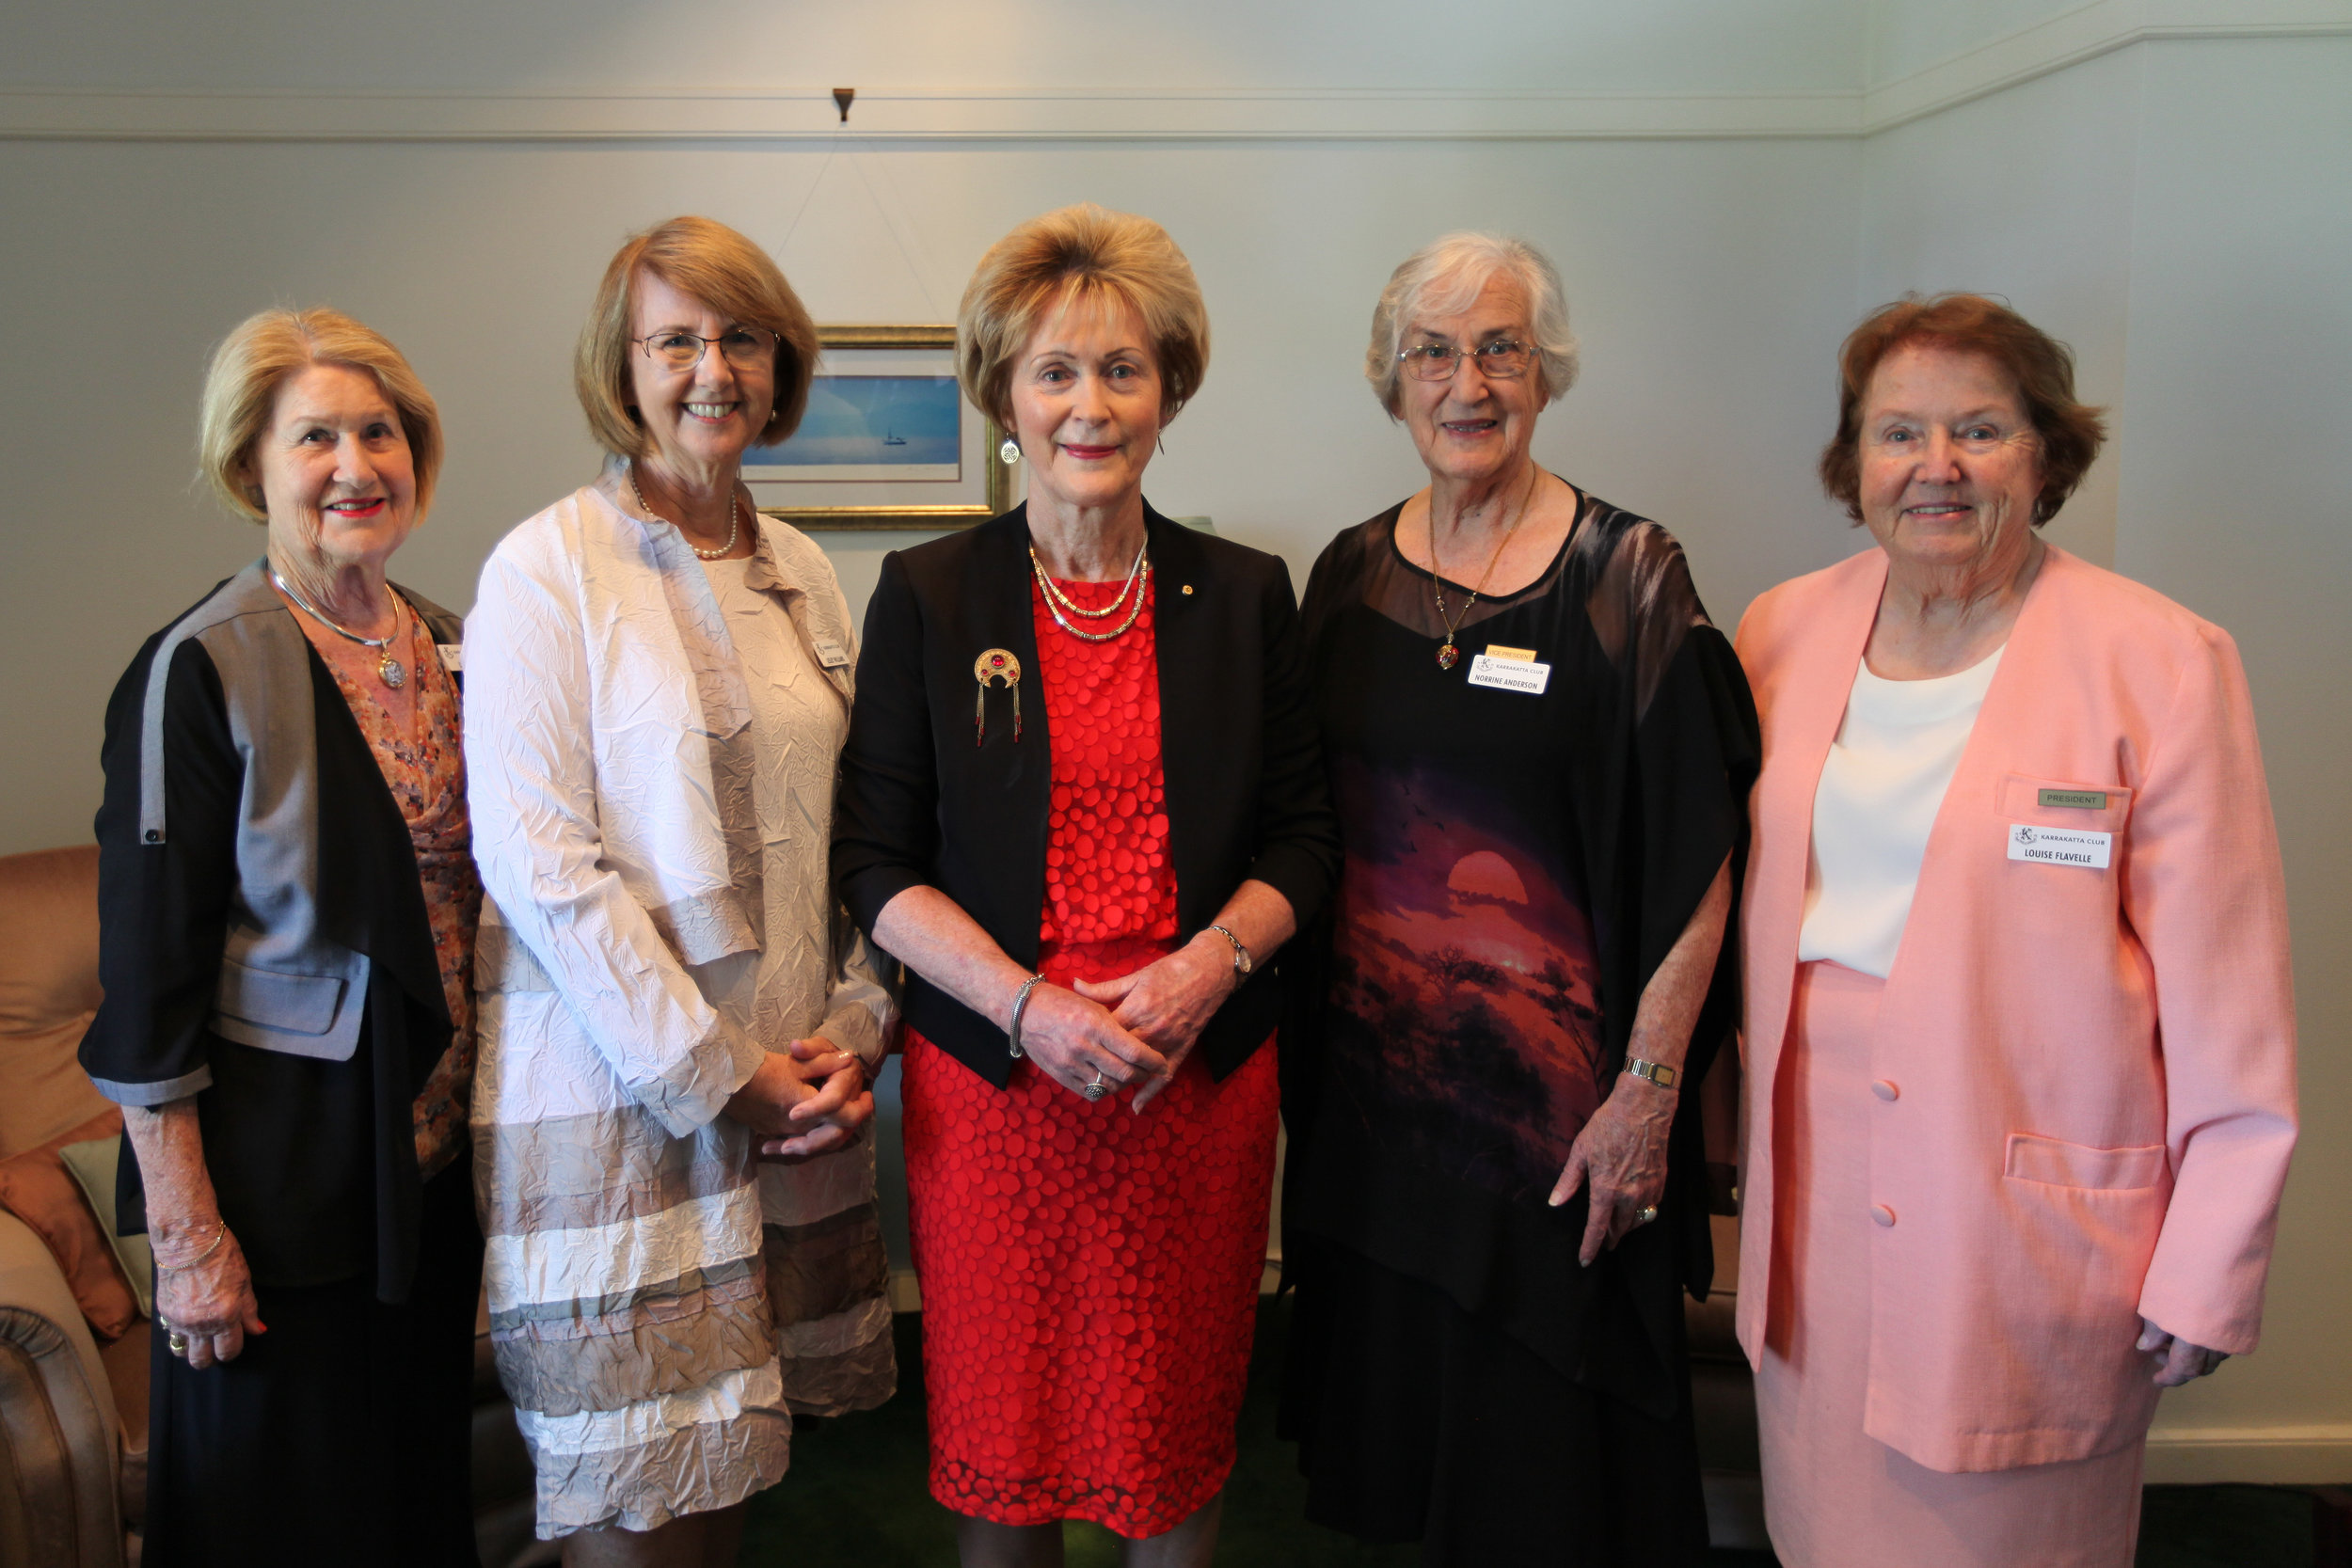 Left to Right: Mrs Lynn Mias, Dr Lesley Williams, Her Excellency Mrs Kerry Sanderson AC, Dr Norrine Anderson, Mrs Louise Flavelle